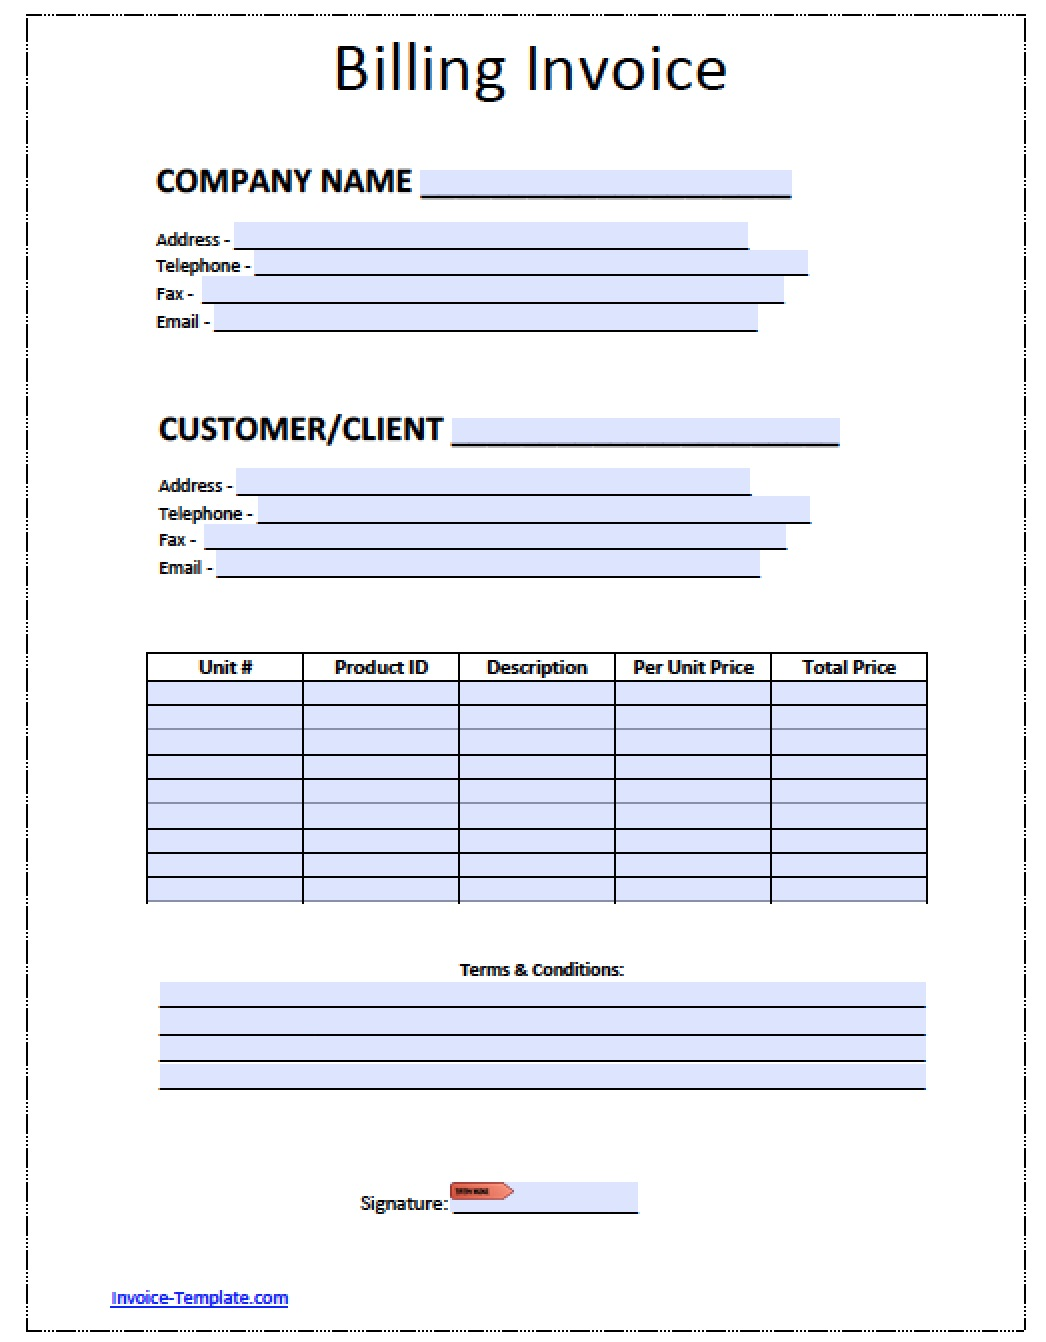 Usdgus  Gorgeous Billing Invoice Invoices Faq U Cloudflare Support Billing  With Exciting Free Billing Invoice Template  Excel  Pdf  Word Doc  Billing With Attractive Free Billing Invoice Template Also Invoice For Payment In Addition Aia Invoice And Free Printable Invoices Online As Well As Blank Invoice Template Excel Additionally Invoice Form Template From Happytomco With Usdgus  Exciting Billing Invoice Invoices Faq U Cloudflare Support Billing  With Attractive Free Billing Invoice Template  Excel  Pdf  Word Doc  Billing And Gorgeous Free Billing Invoice Template Also Invoice For Payment In Addition Aia Invoice From Happytomco